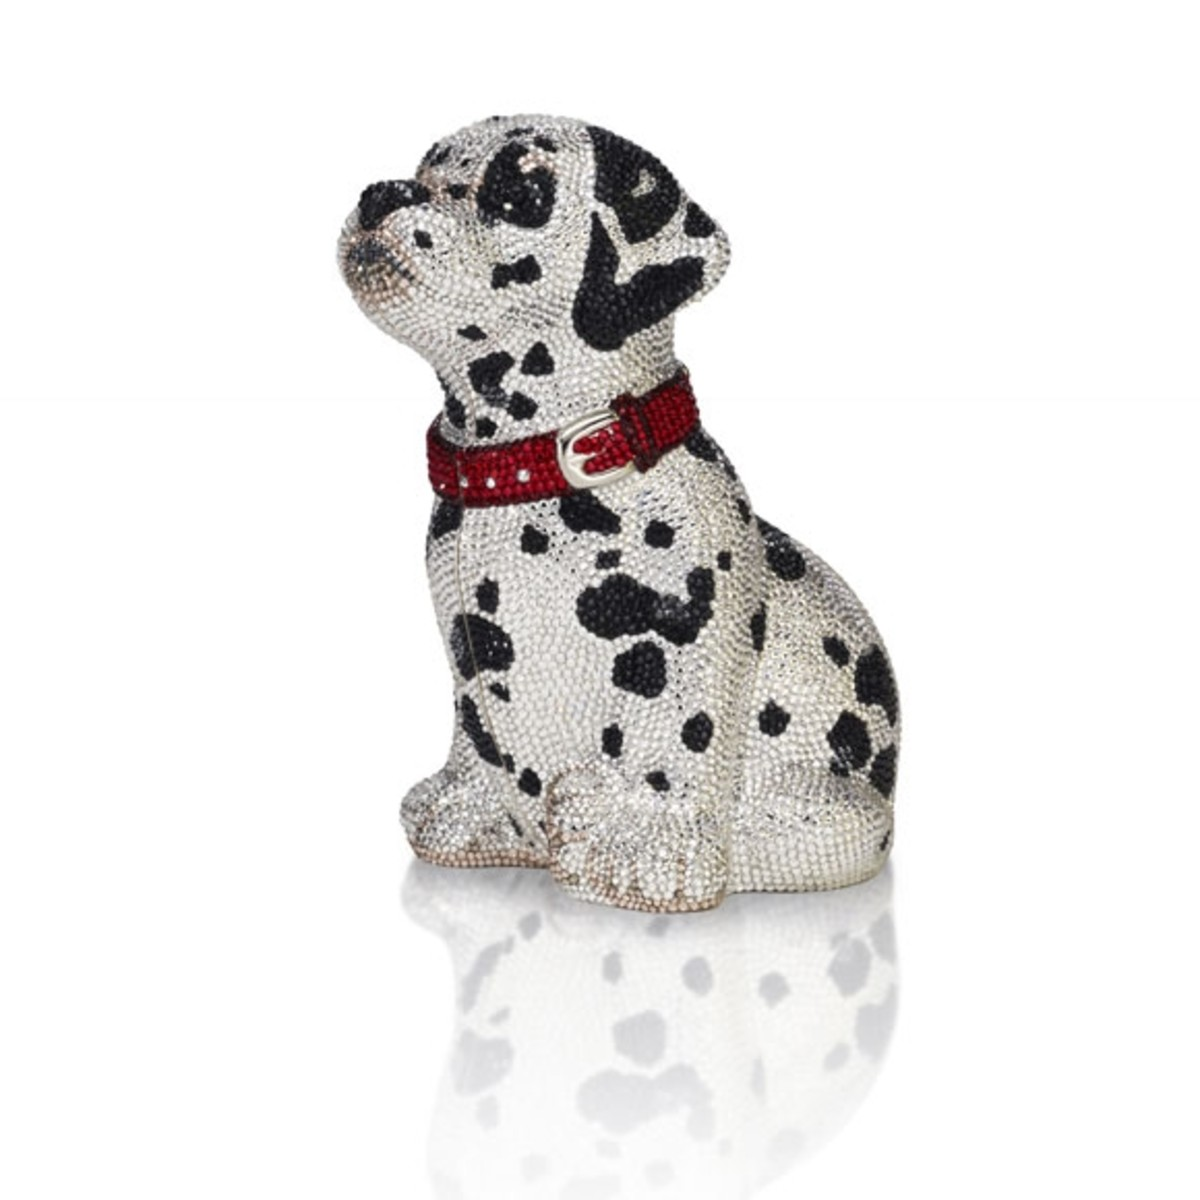 """LUCKYPrice: $4,795Seated Dalmatian minaudi�re features onyx eyes, top snap closure and 19"""" chain. Absolutely adorable and perfect for all you dog lovers out there!"""